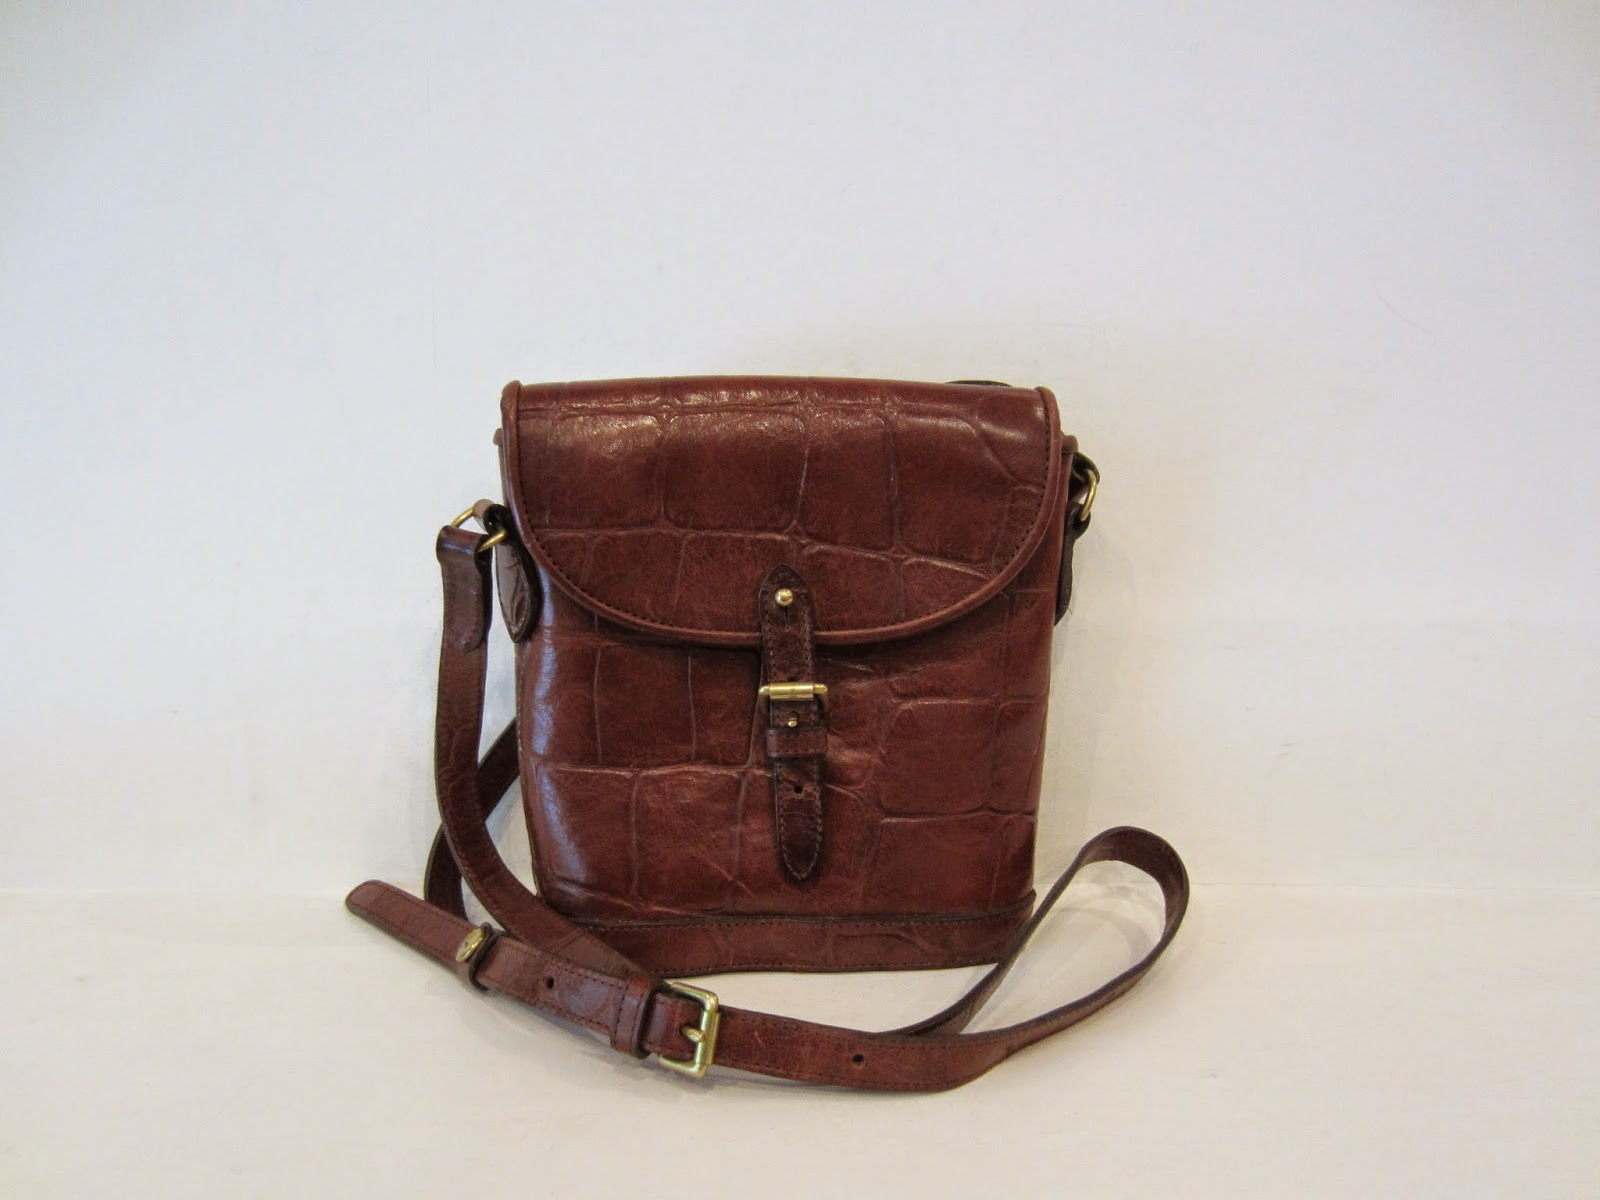 Mulberry Vintage Brown Leather Mock Croc Messenger bag